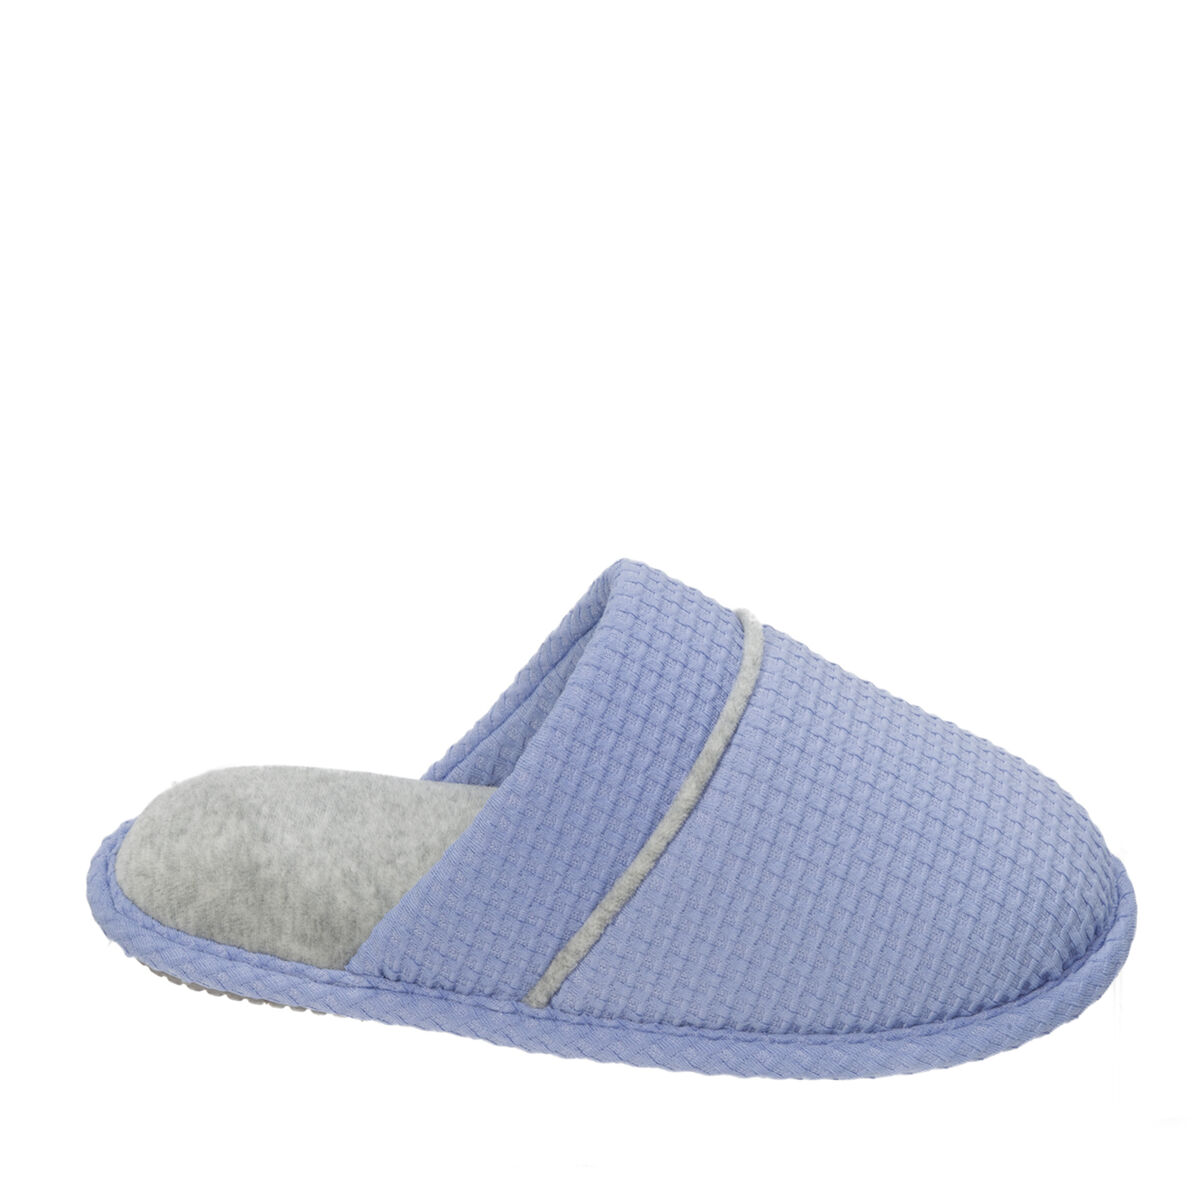 Women's Textured Knit Closed Toe Scuff